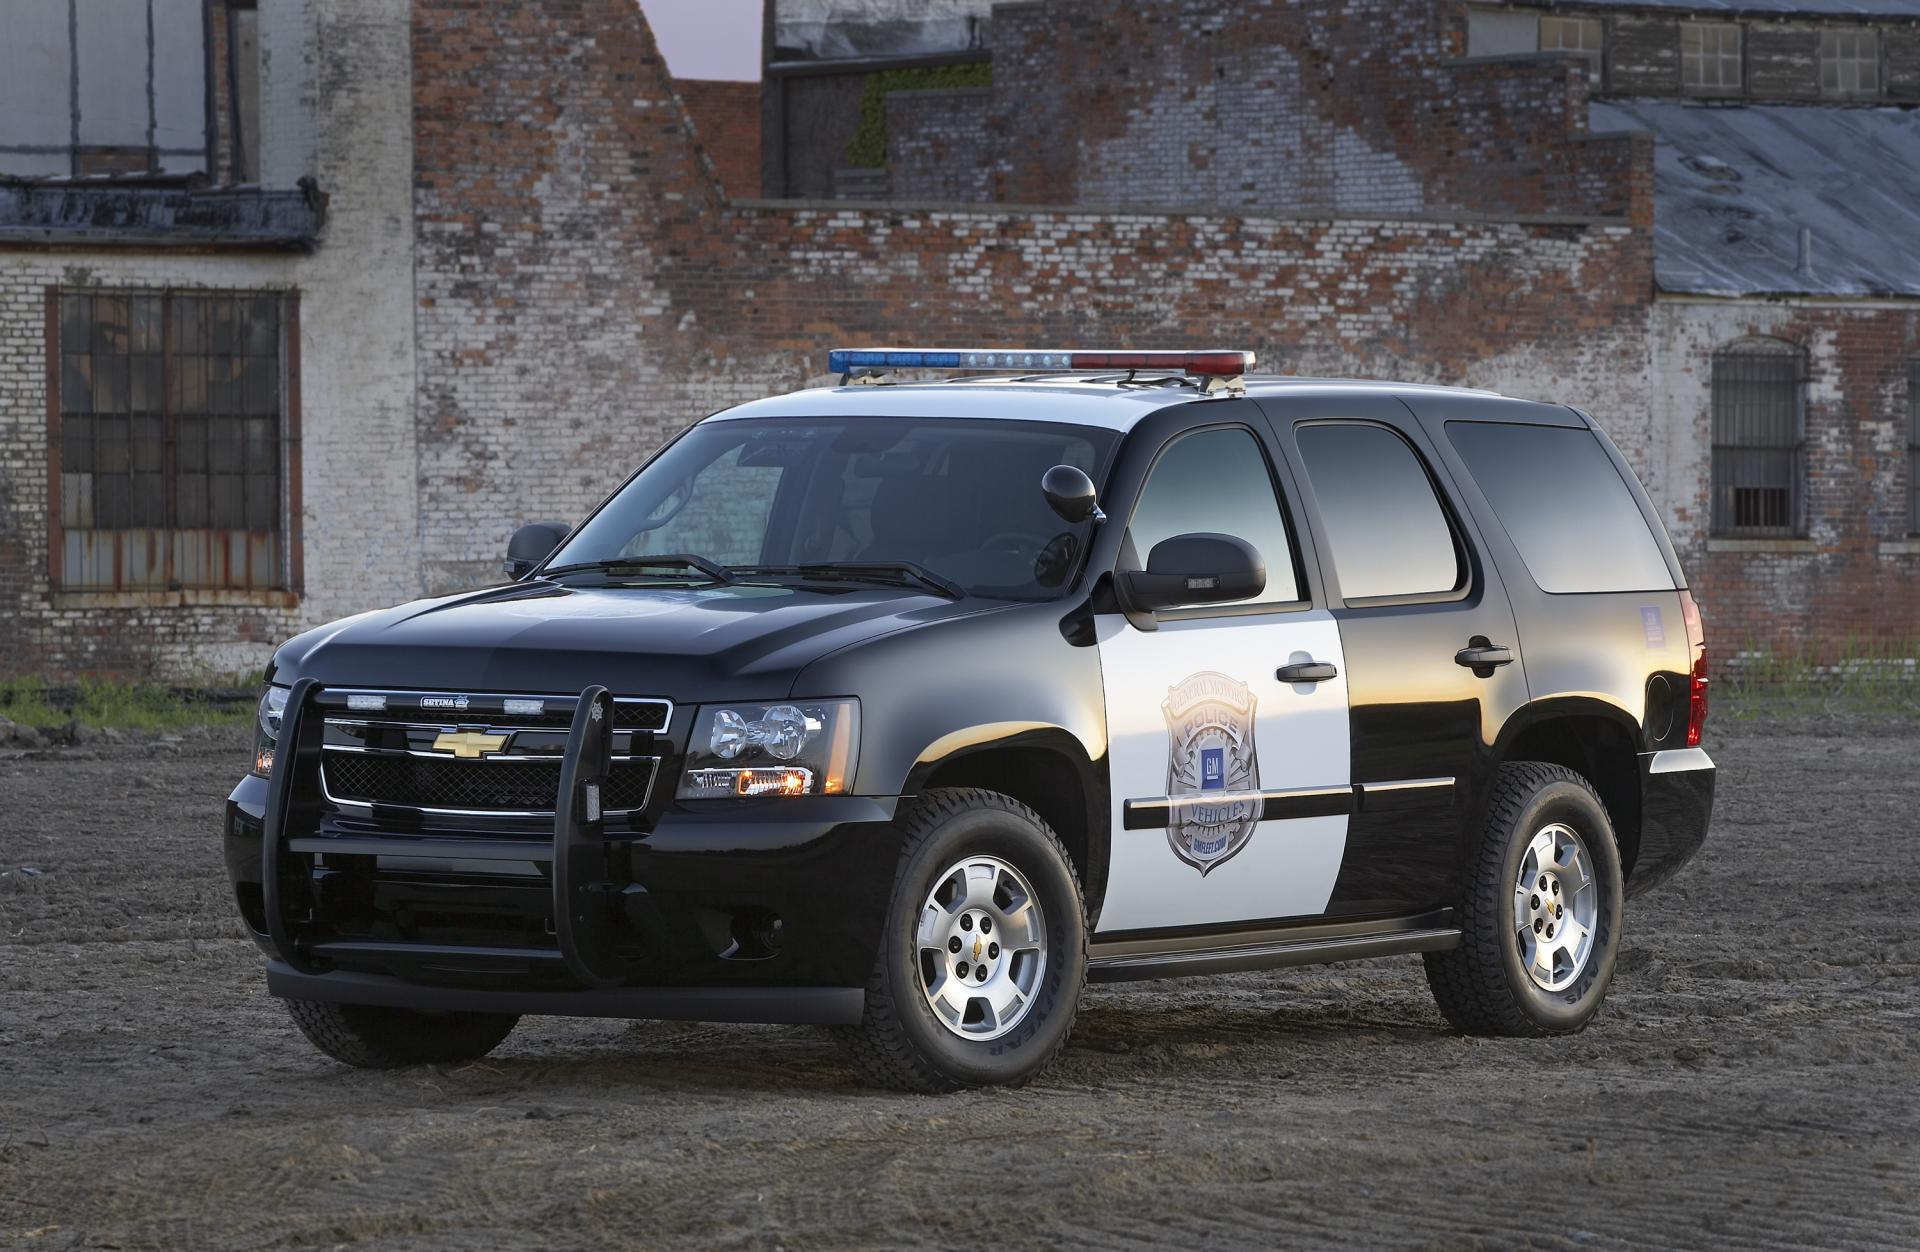 2012 Chevrolet Tahoe Police Special Service Vehicle News and Information